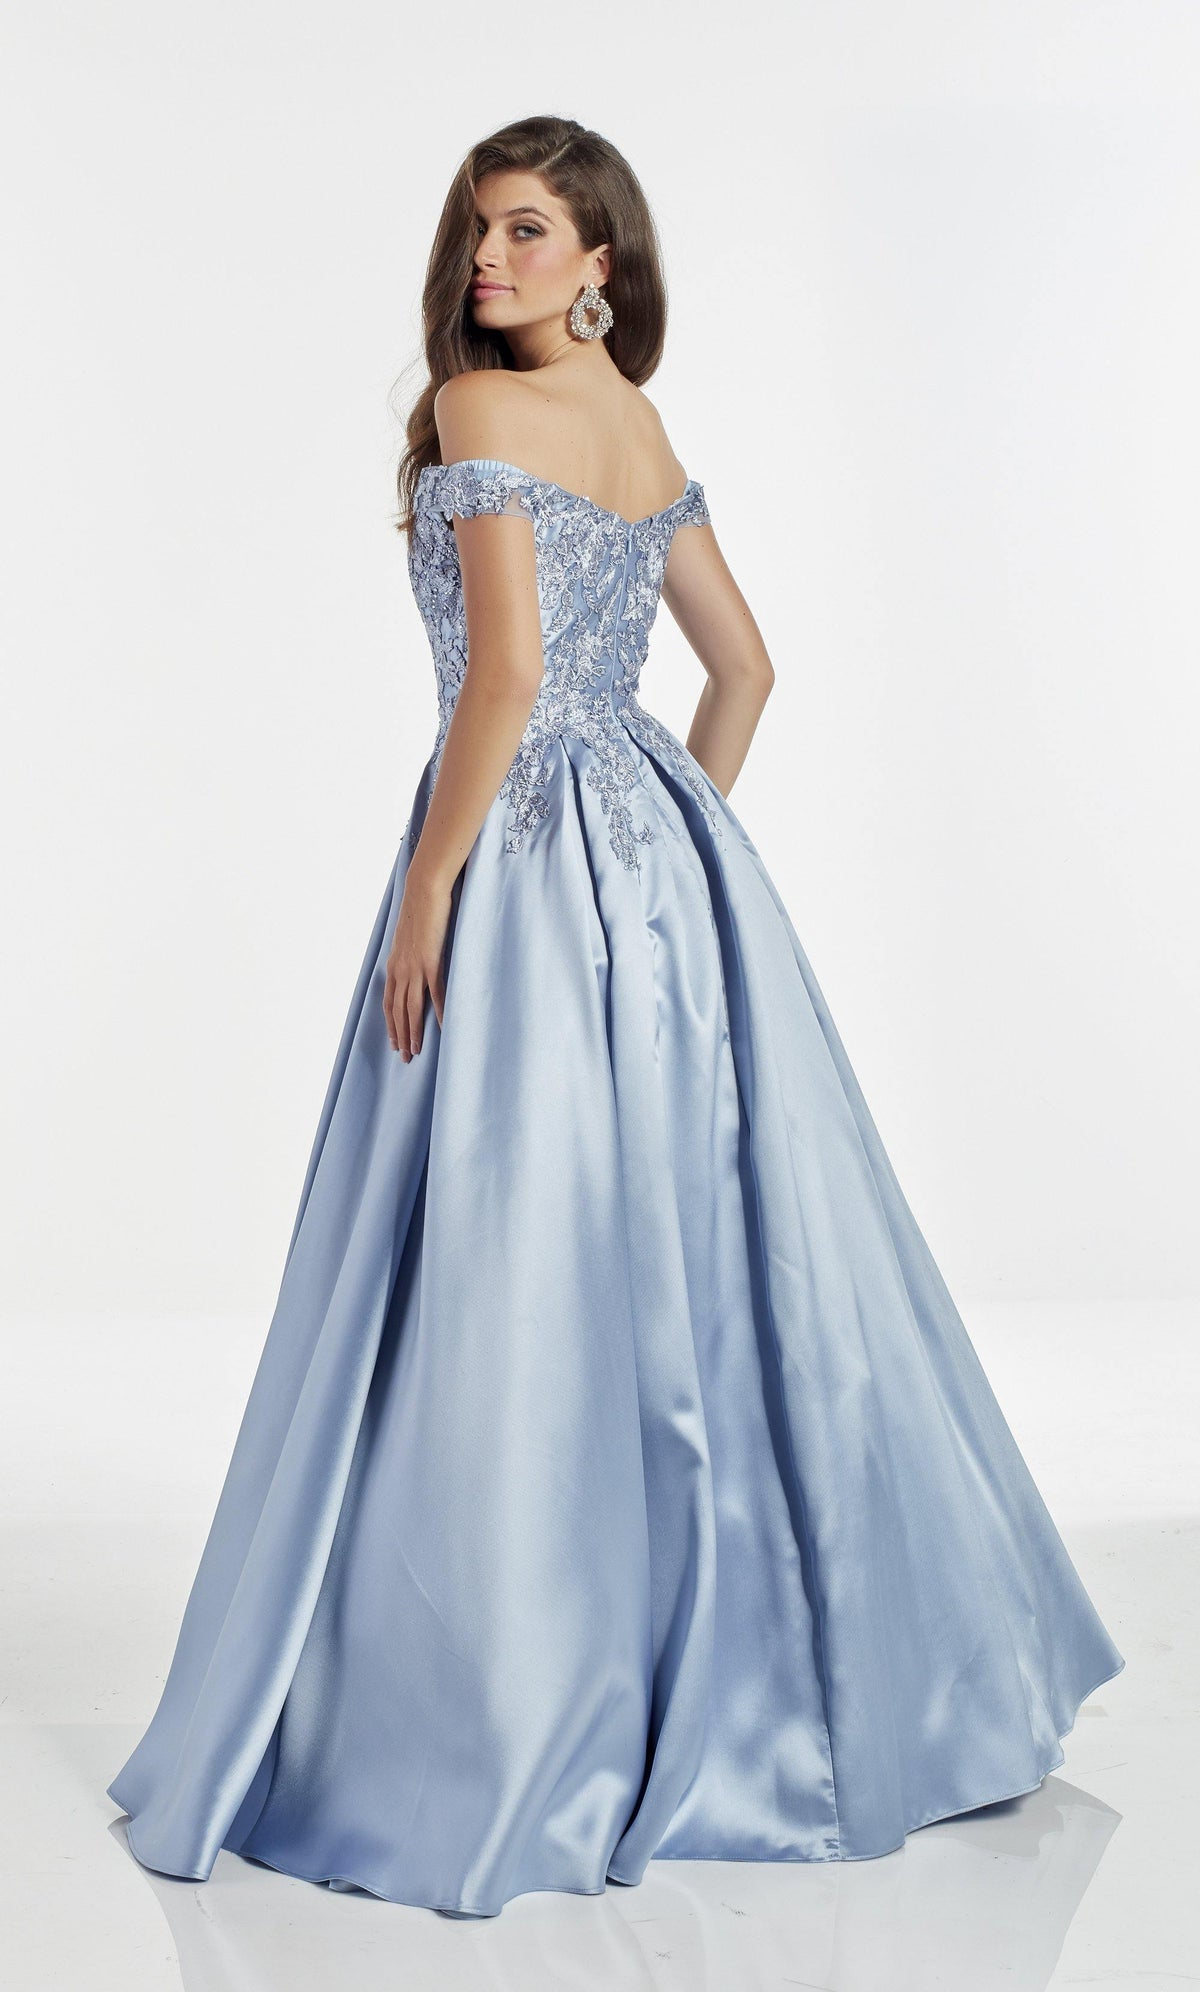 French Blue off the shoulder mikado ball gown with an enclosed back and lace detail